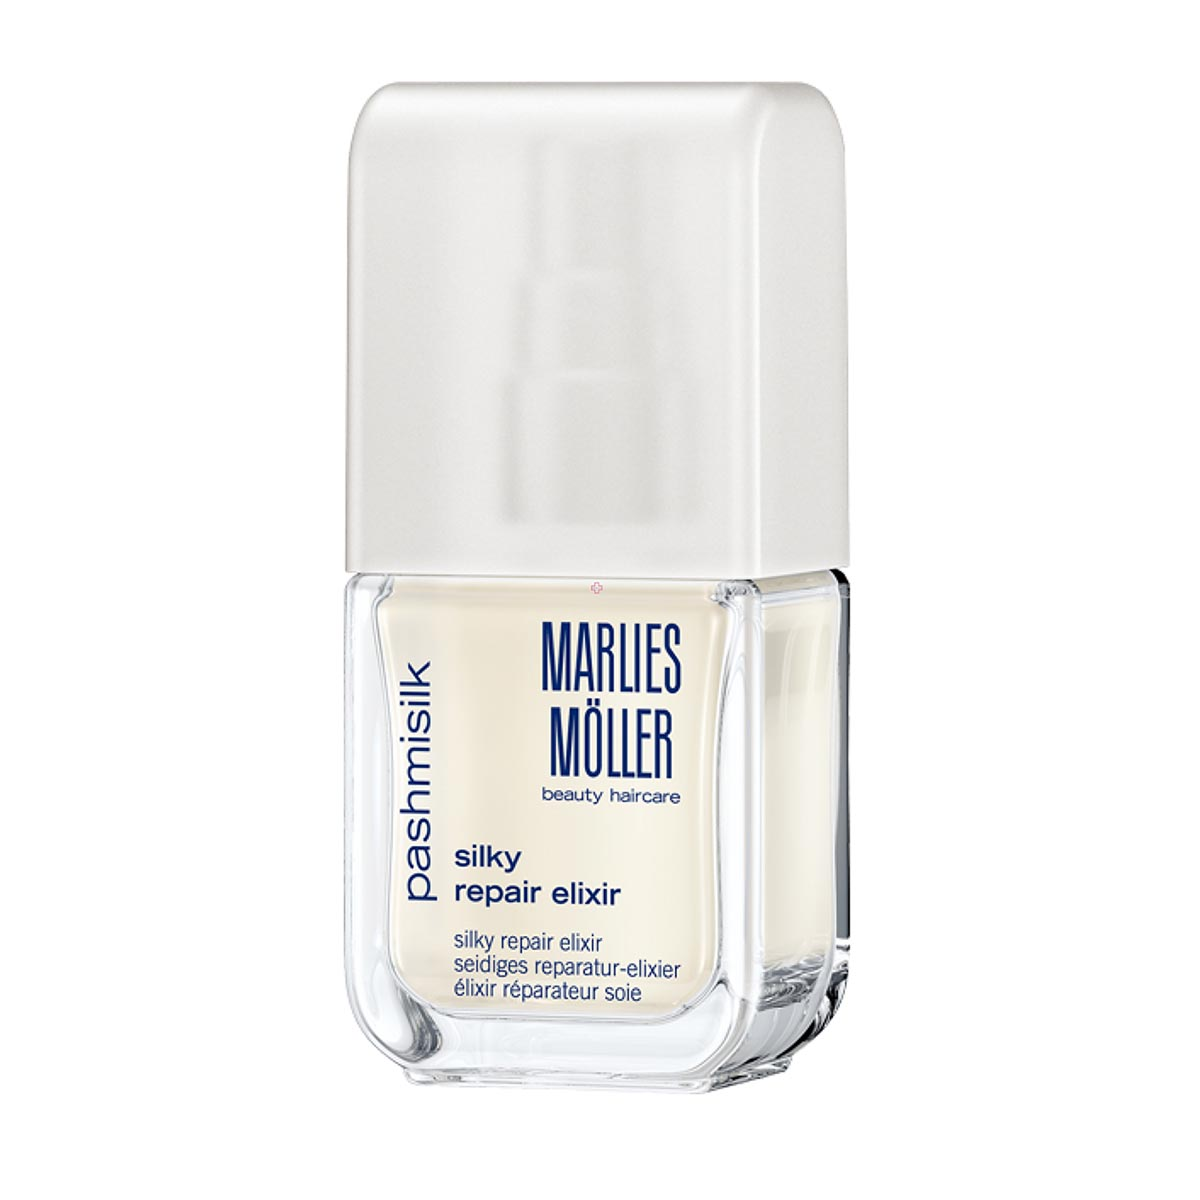 Marlies moller repair elixir 50ml